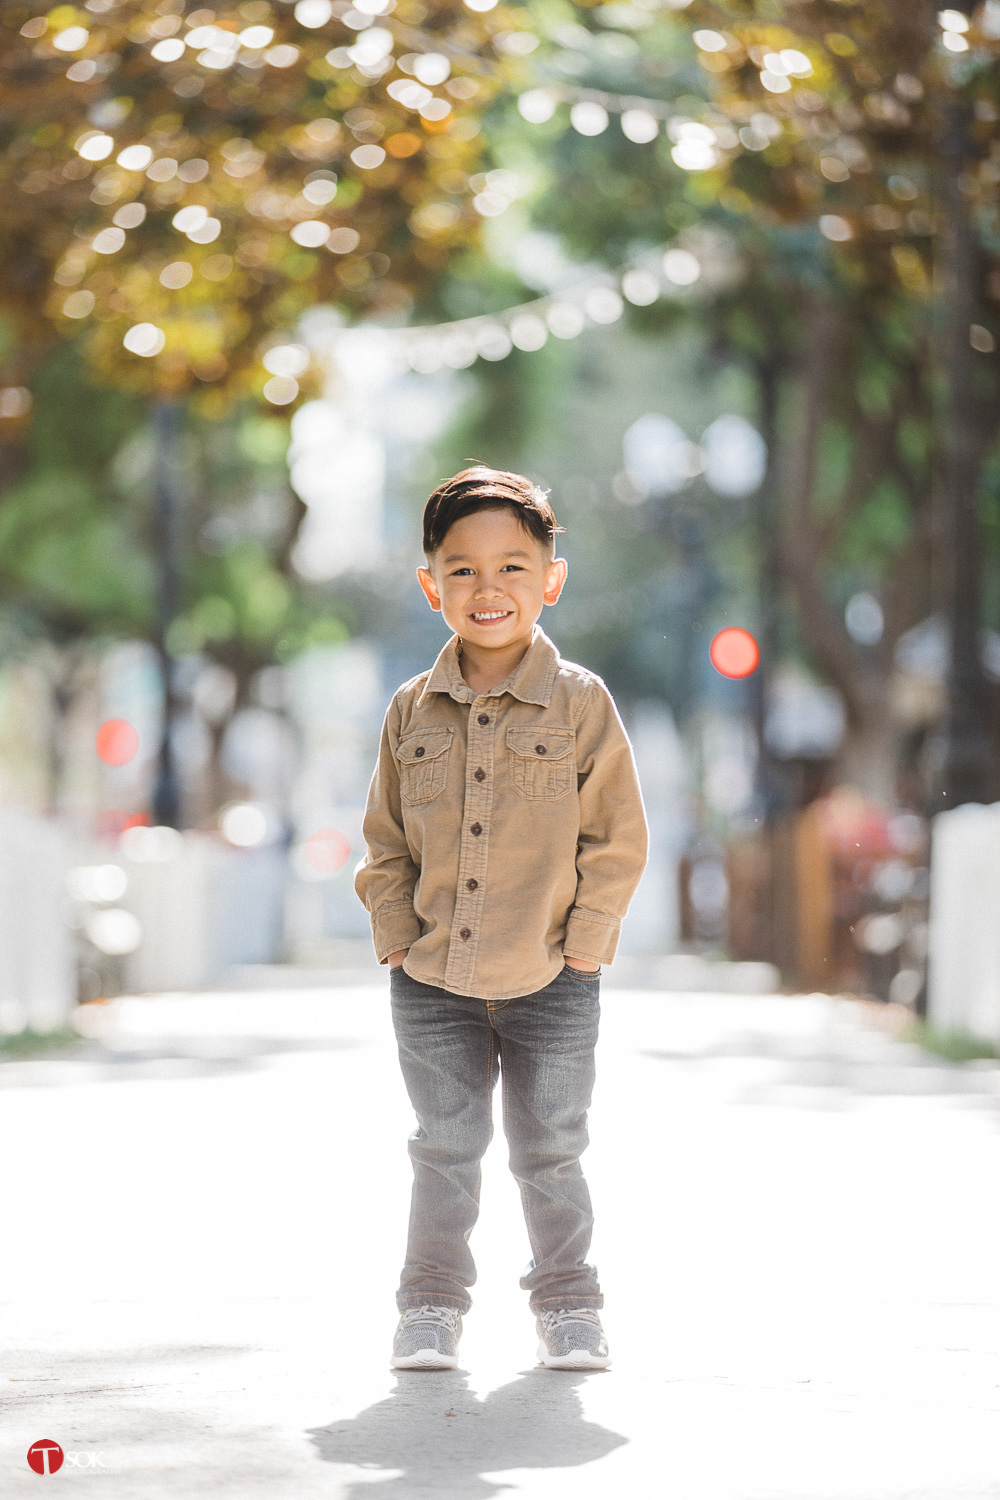 taylor-family-photoshoot-downtown-san-jose-15.jpg